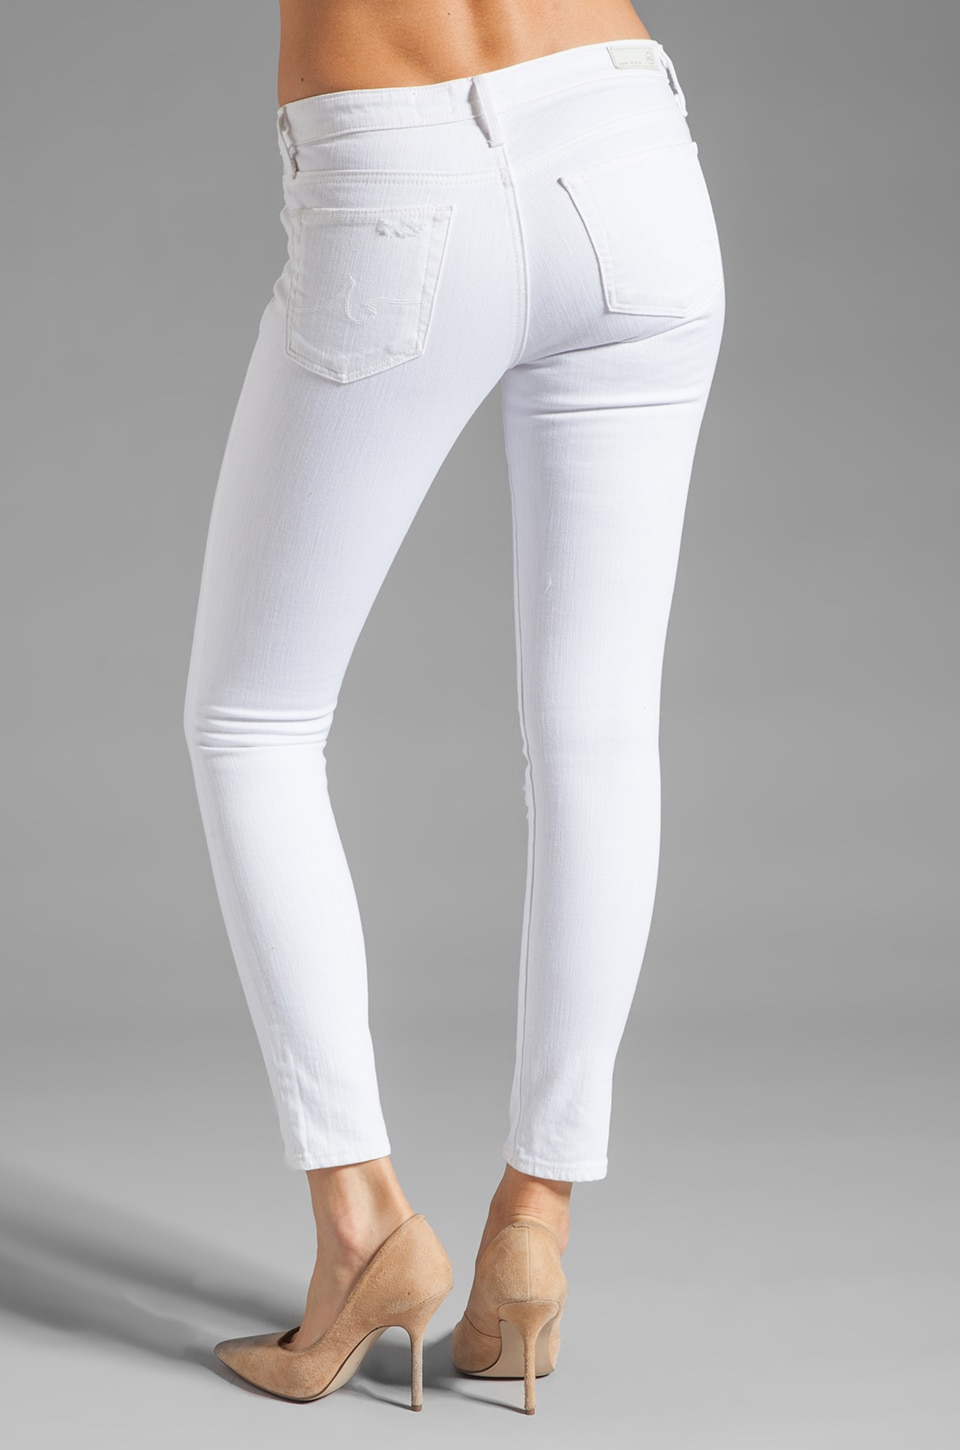 AG Adriano Goldschmied The Legging Ankle in White | REVOLVE